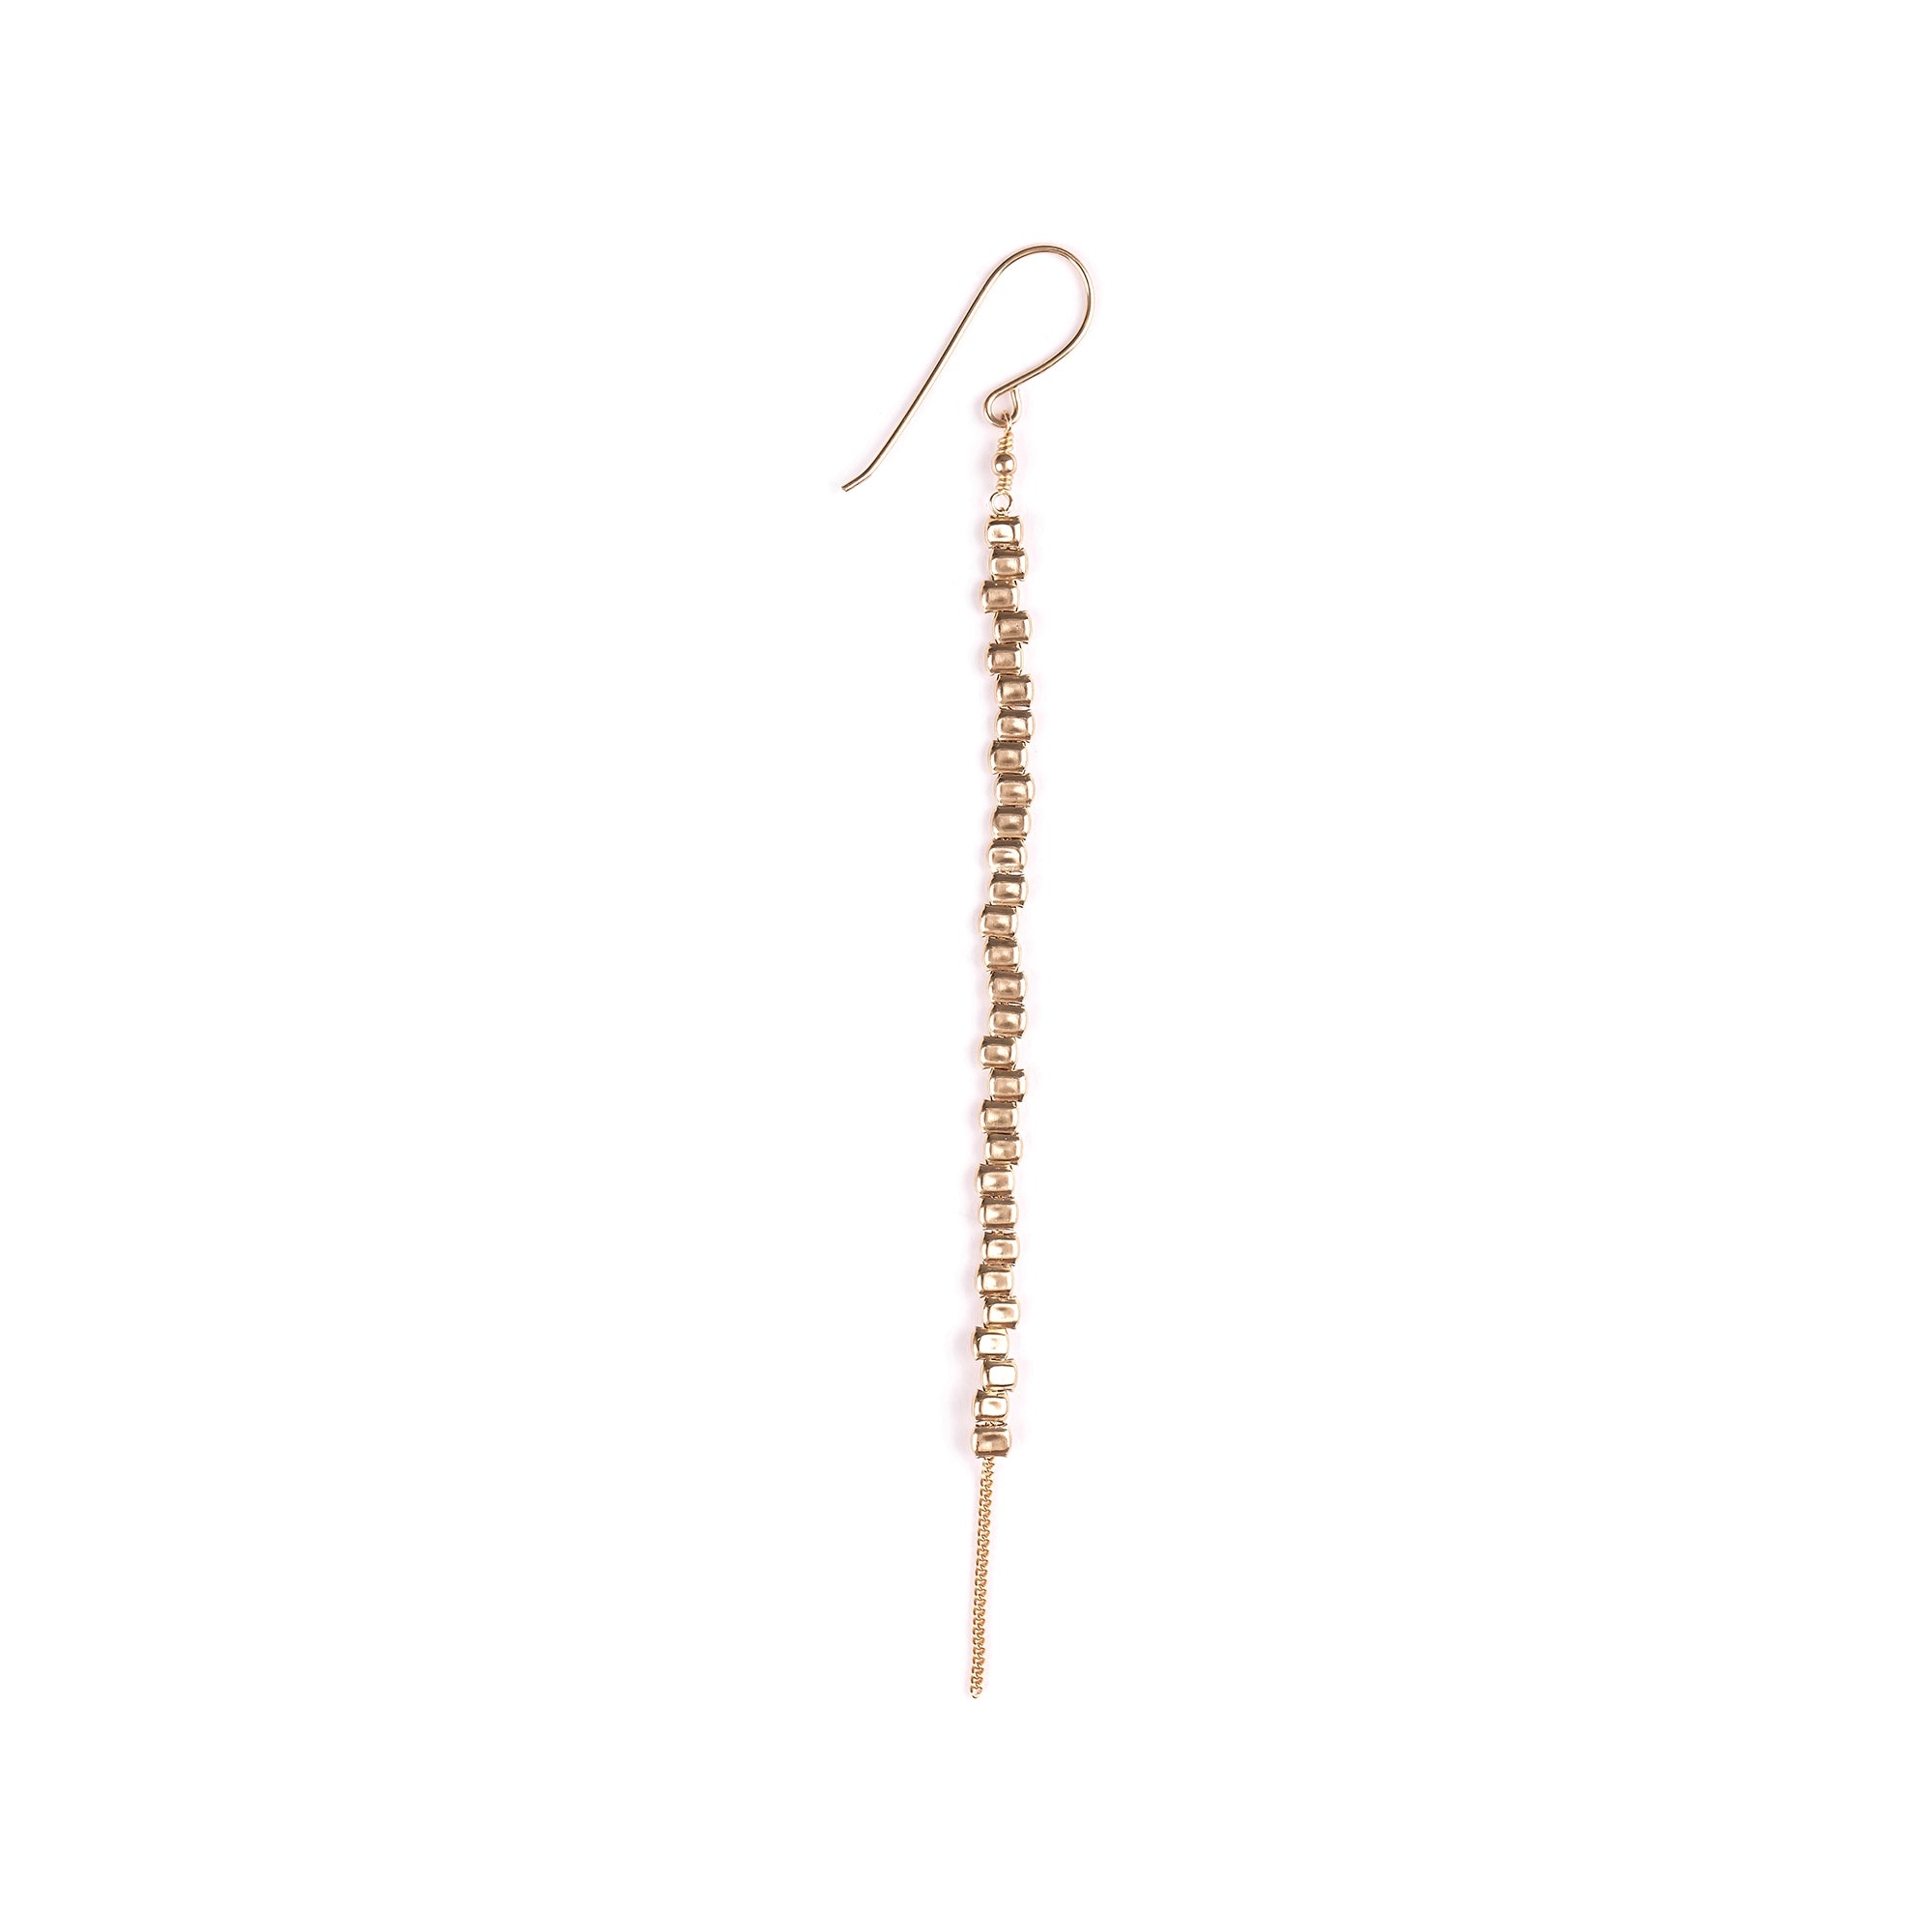 Goldfilled long hanging earrings